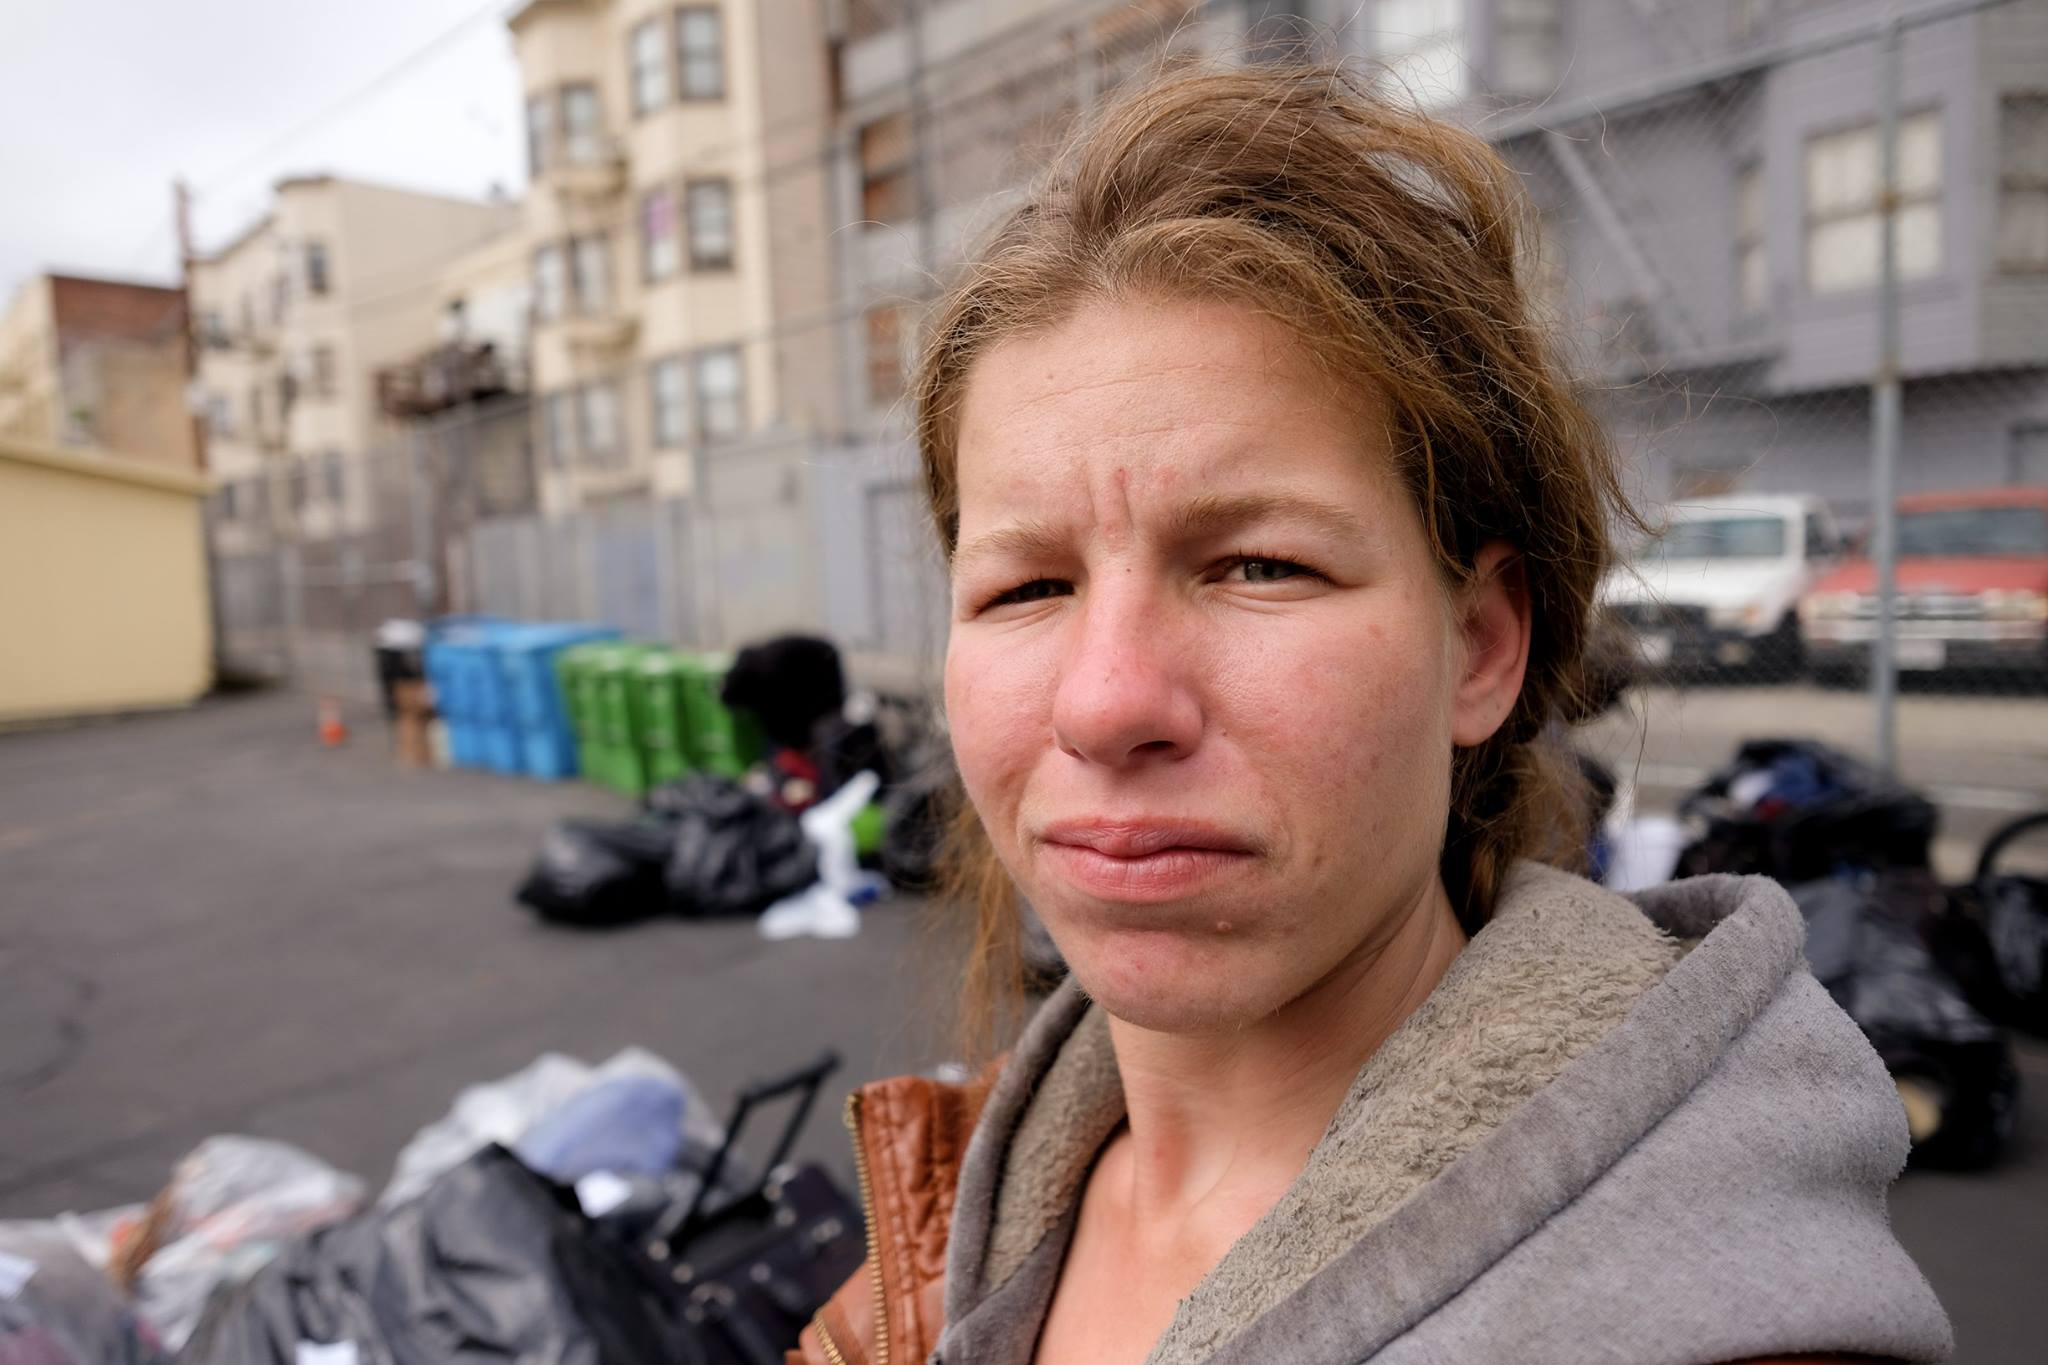 "<div class=""meta image-caption""><div class=""origin-logo origin-image none""><span>none</span></div><span class=""caption-text"">A team from San Francisco's Navigation Center lulled Corry off the streets and helped get her the services she needed. (KGO-TV/Wayne Freedman)</span></div>"